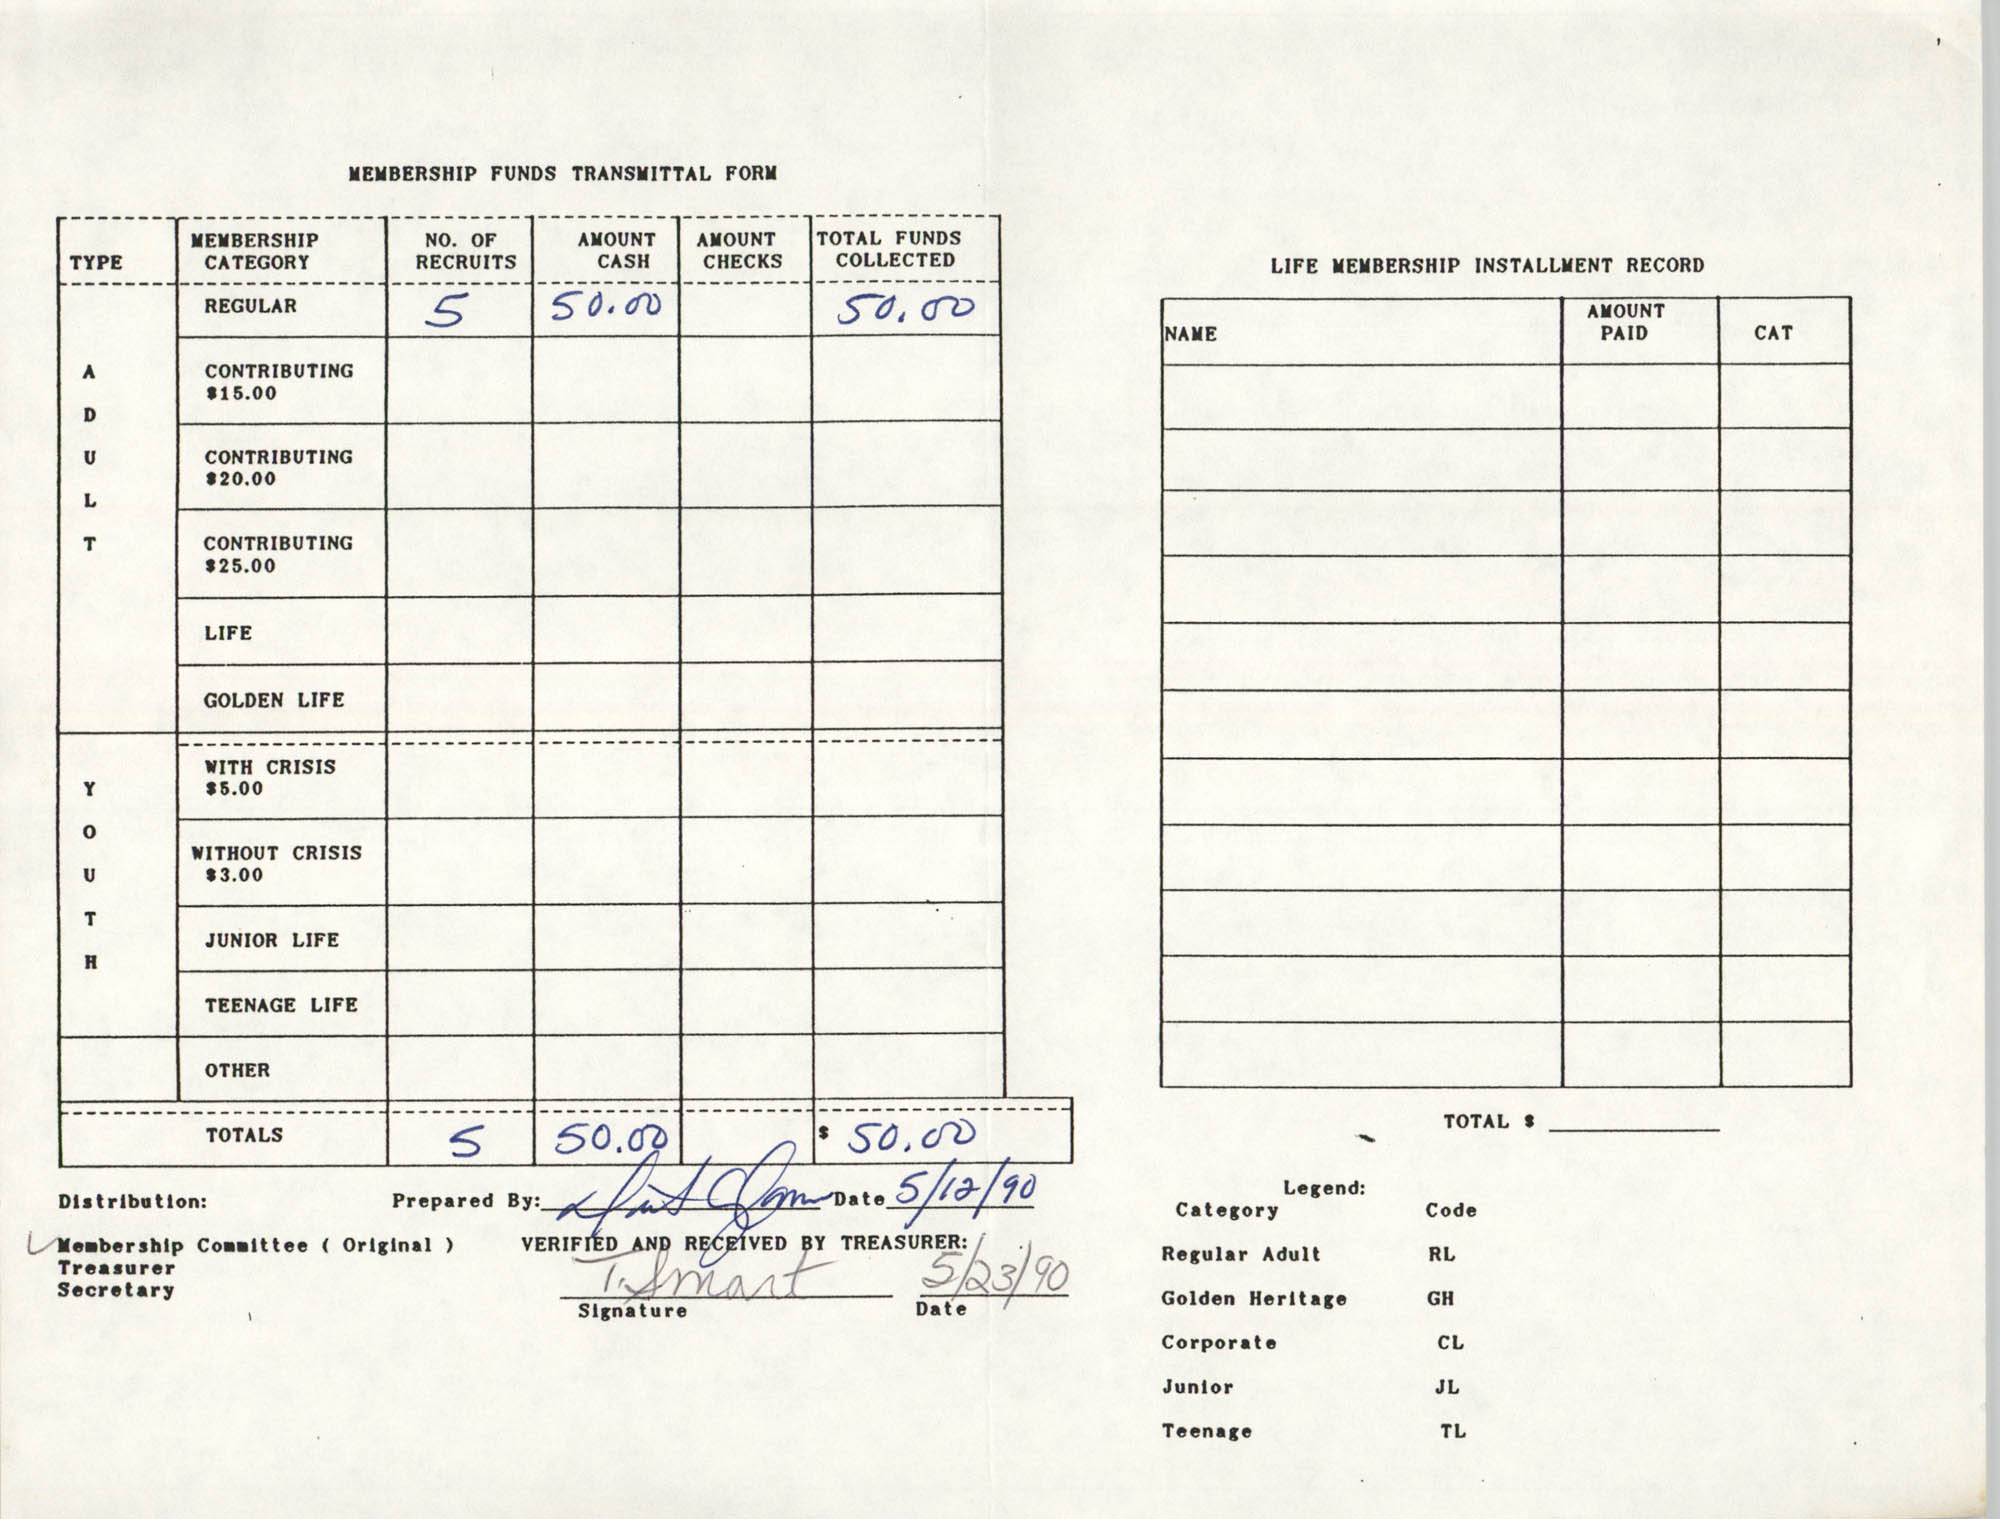 Charleston Branch of the NAACP Funds Transmittal Forms, May 1990, Page 3